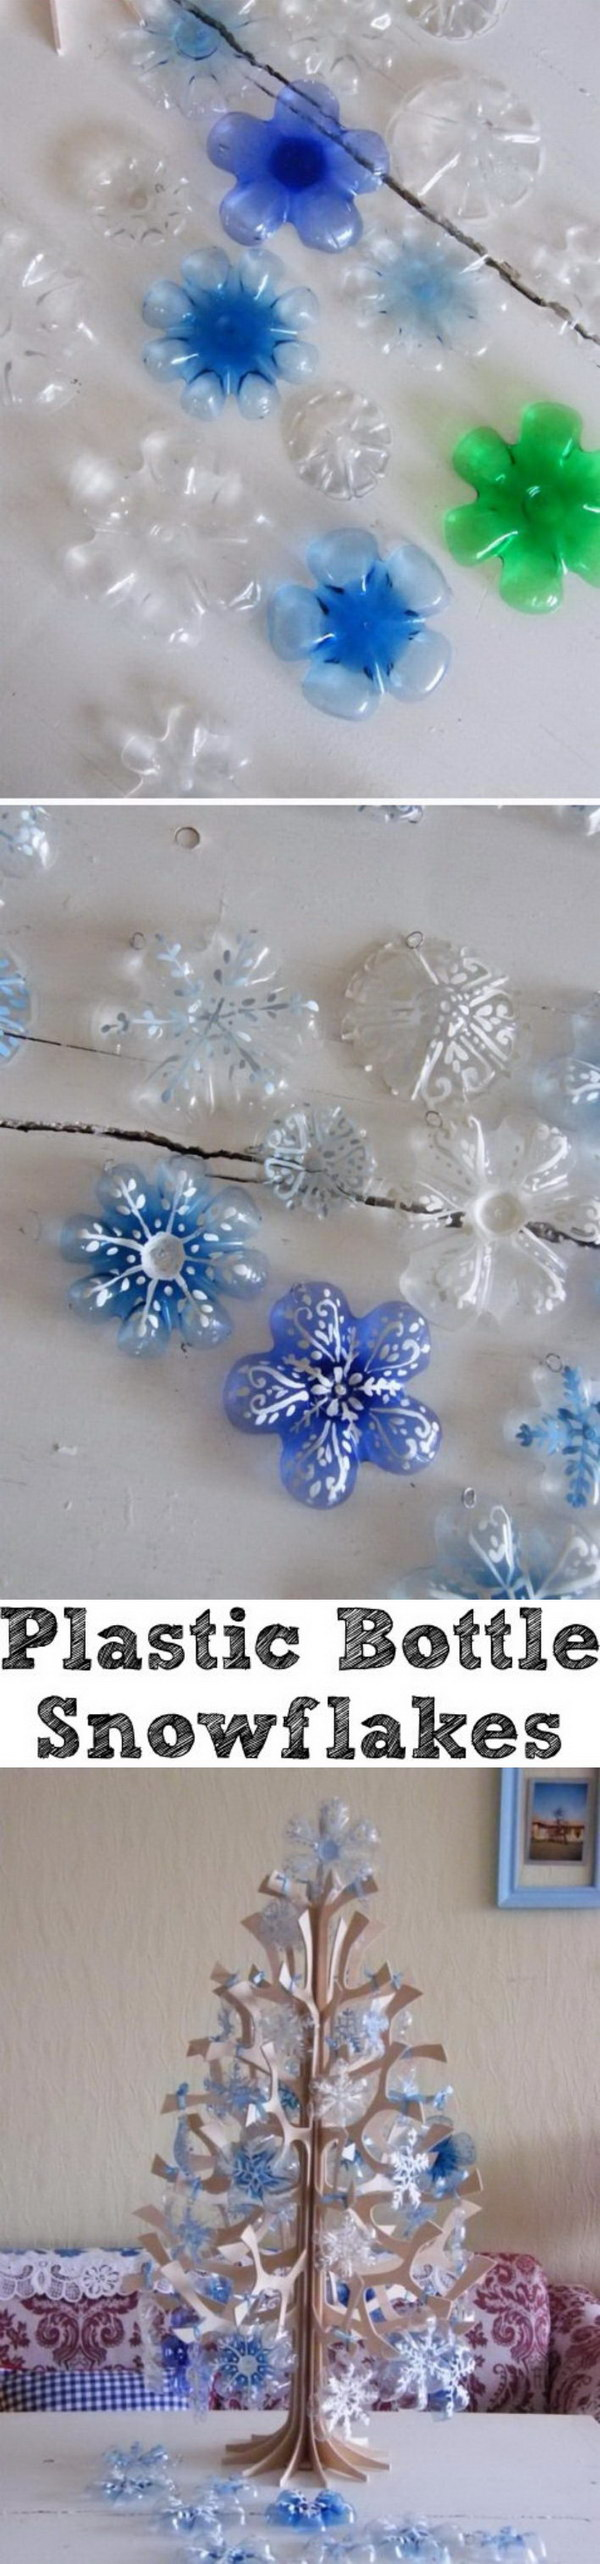 Plastic Bottle Snowflakes.